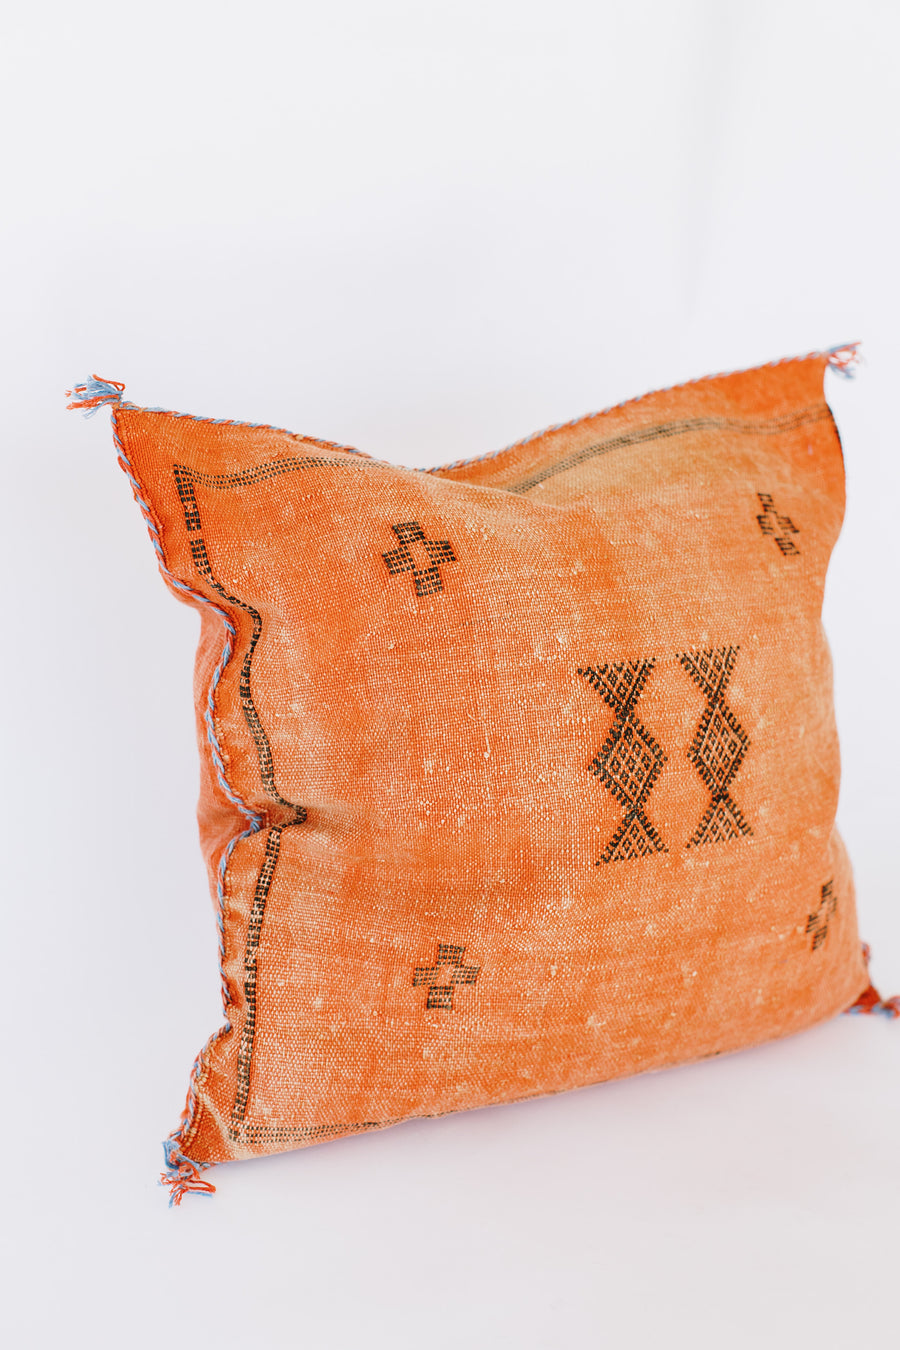 Custus Kilim Pillow (Hand Woven)